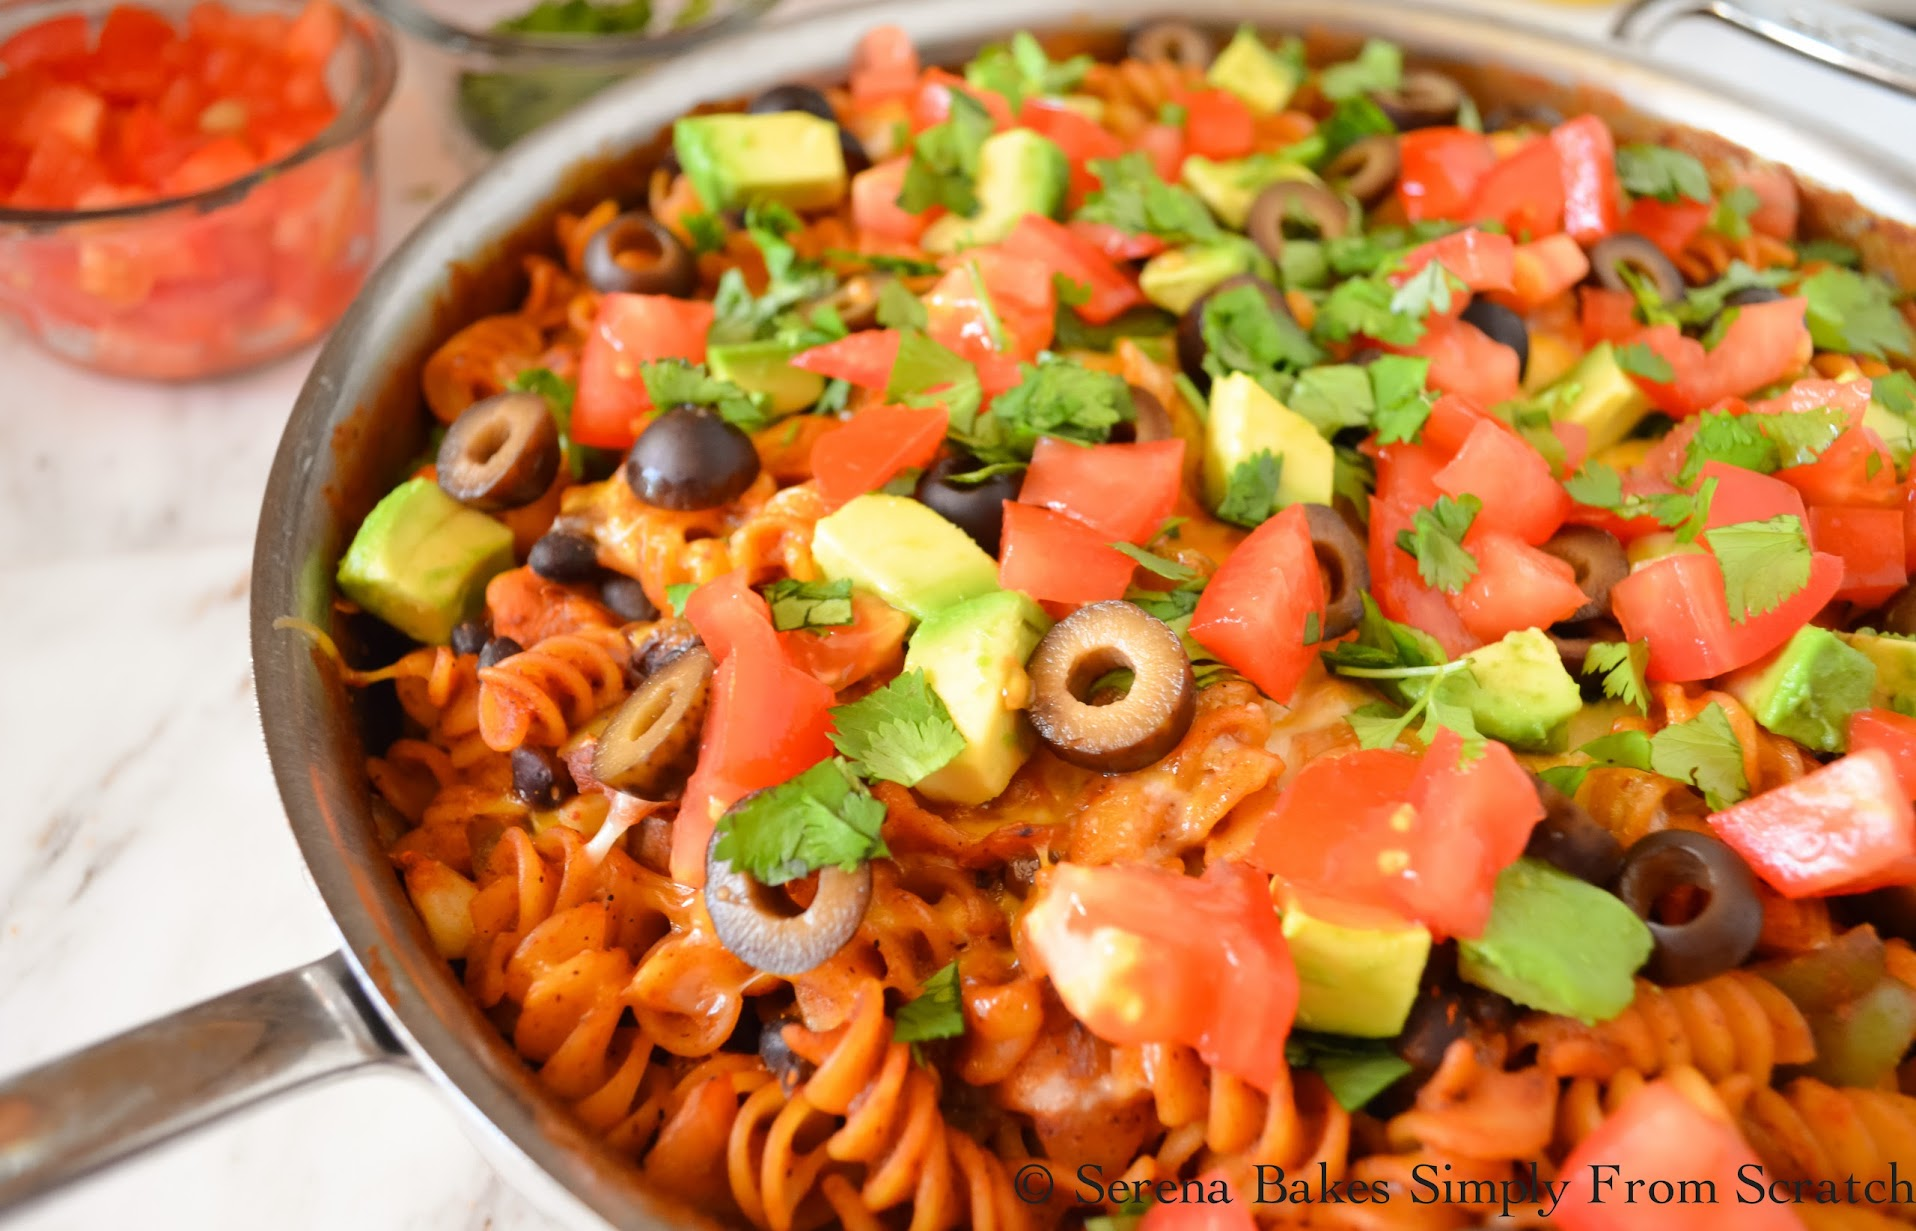 Chicken Enchilada Pasta Skillet with Avocado, Tomatoes, Olives and Cilantro